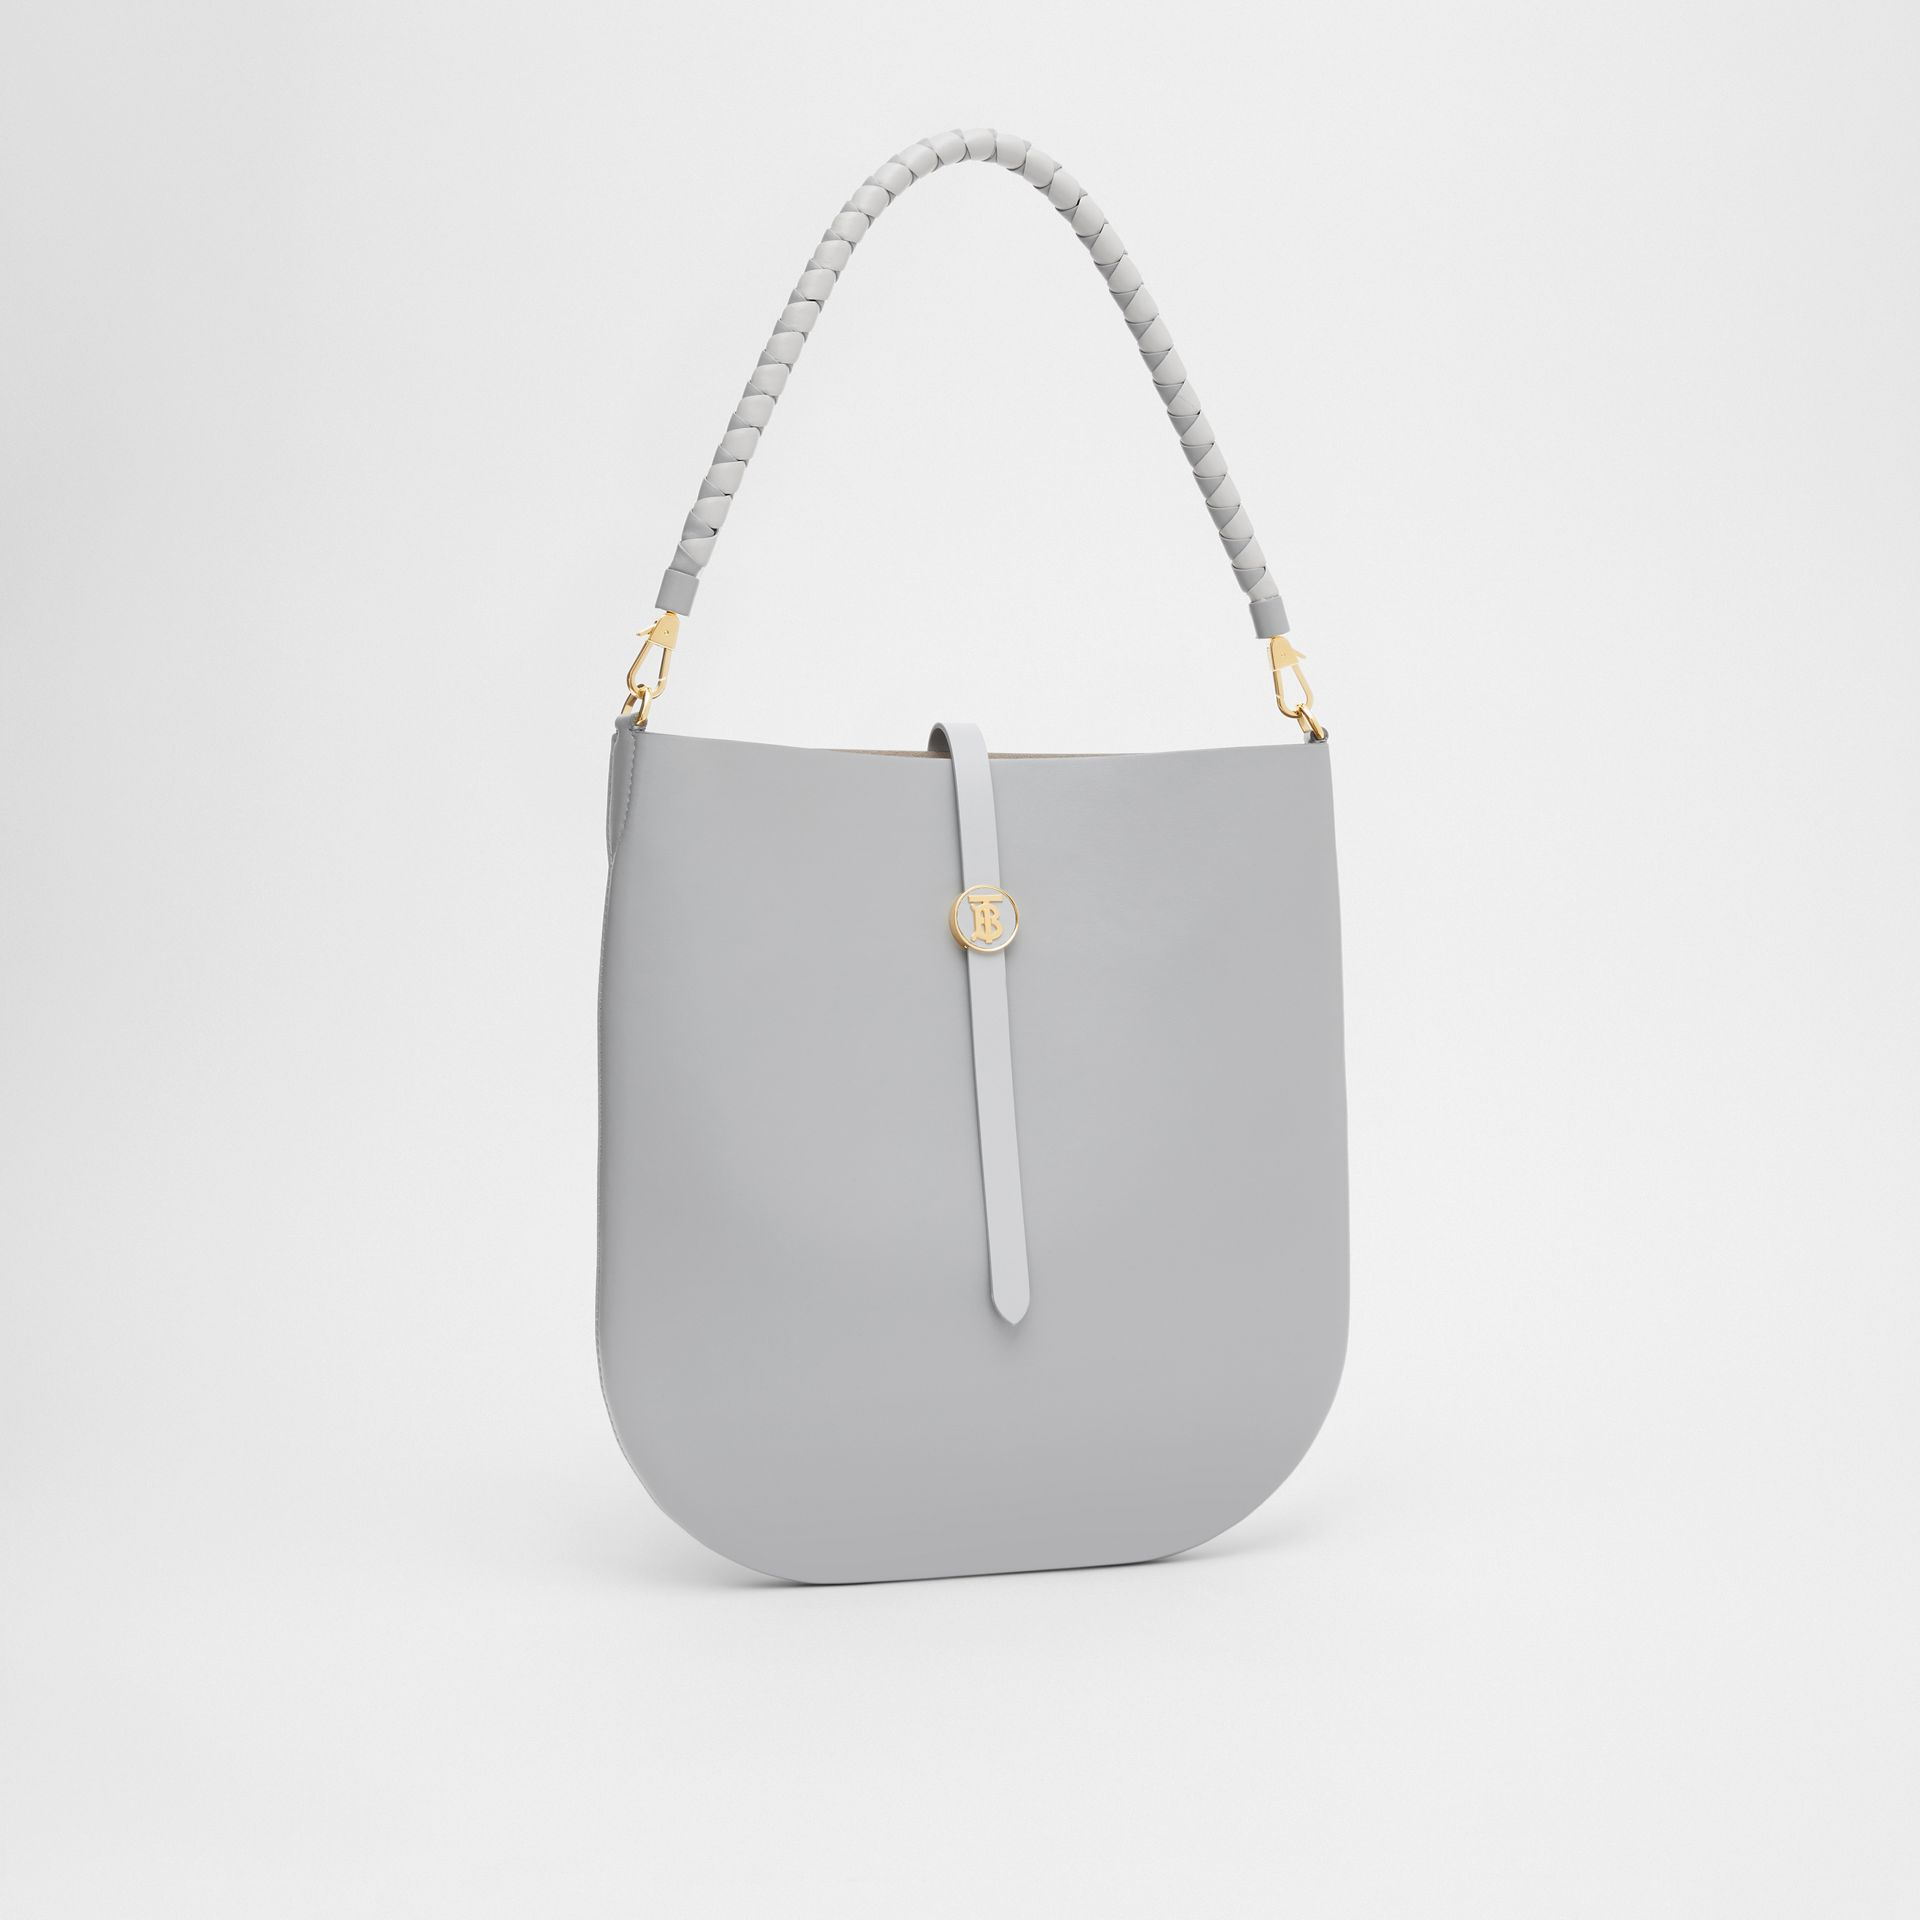 Leather Anne Bag in Cloud Grey - Women | Burberry - gallery image 6